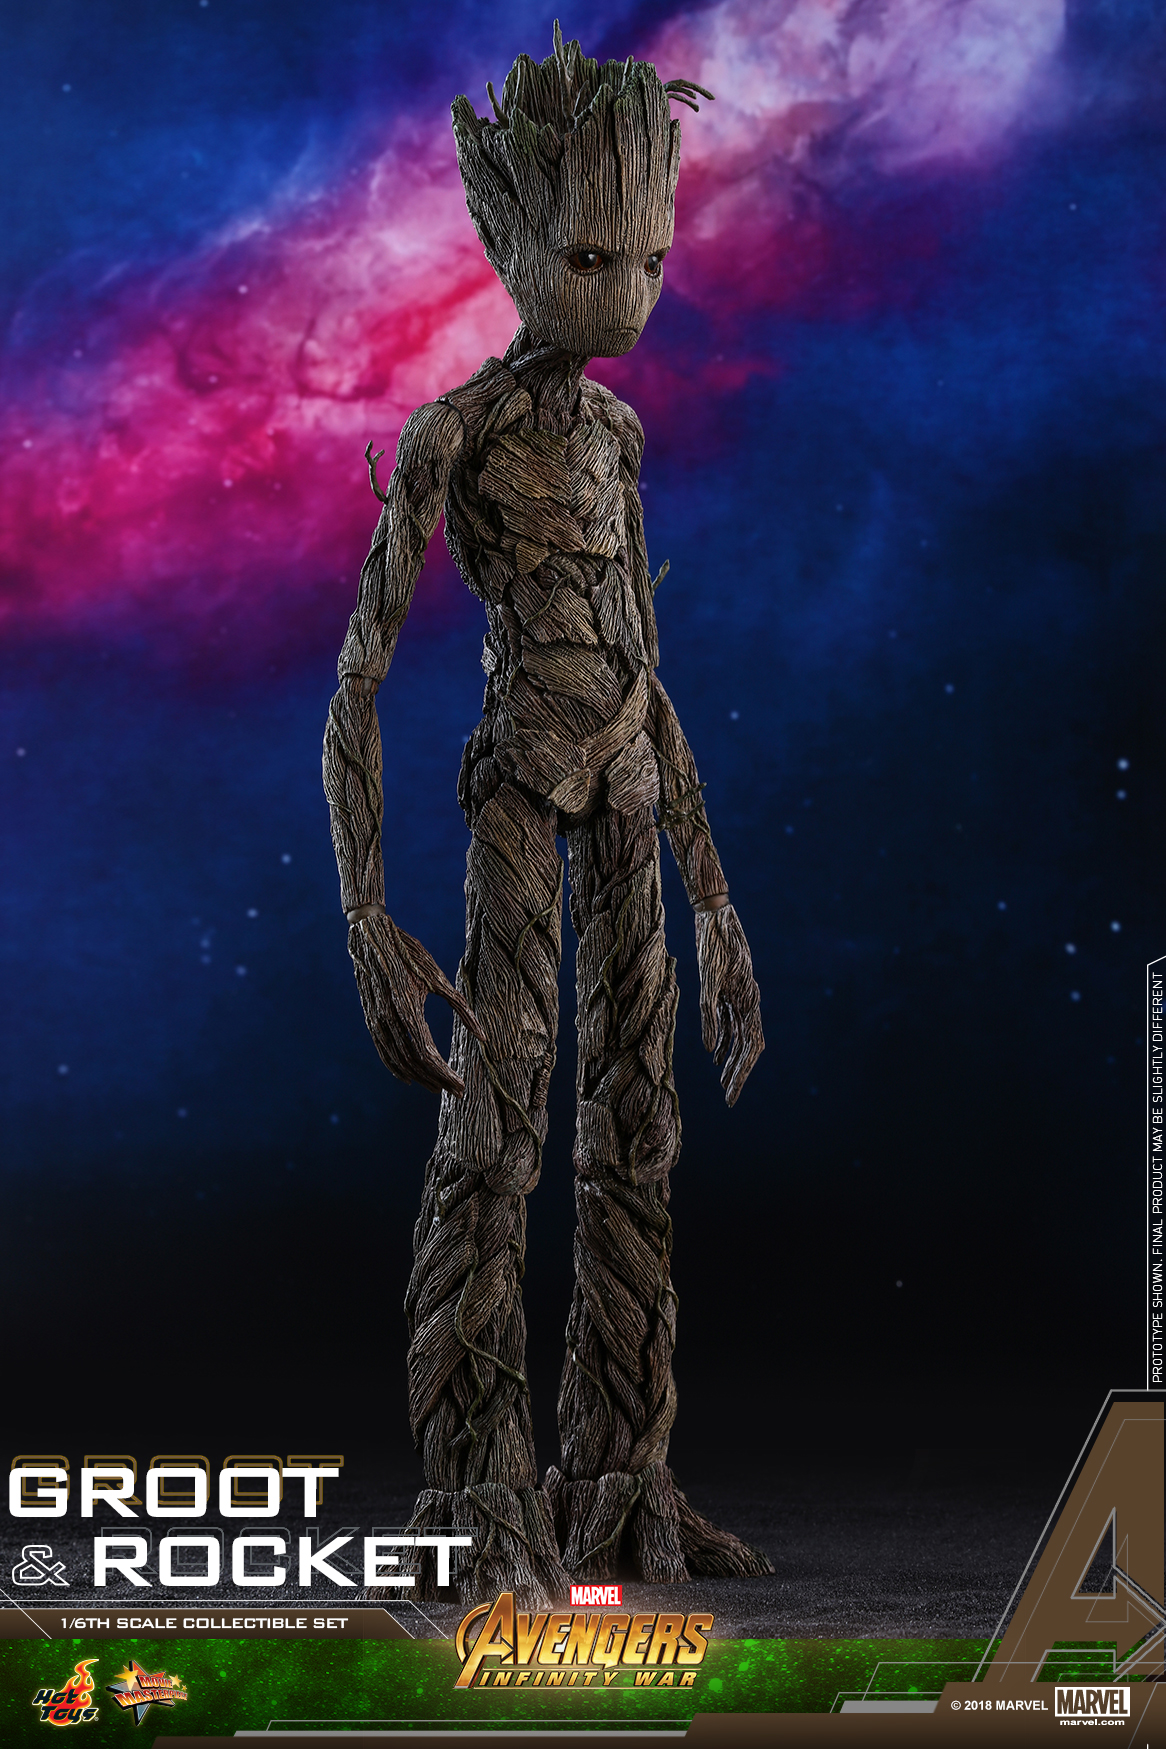 Hot Toys - AIW - Groot & Rocket collectible set_PR8